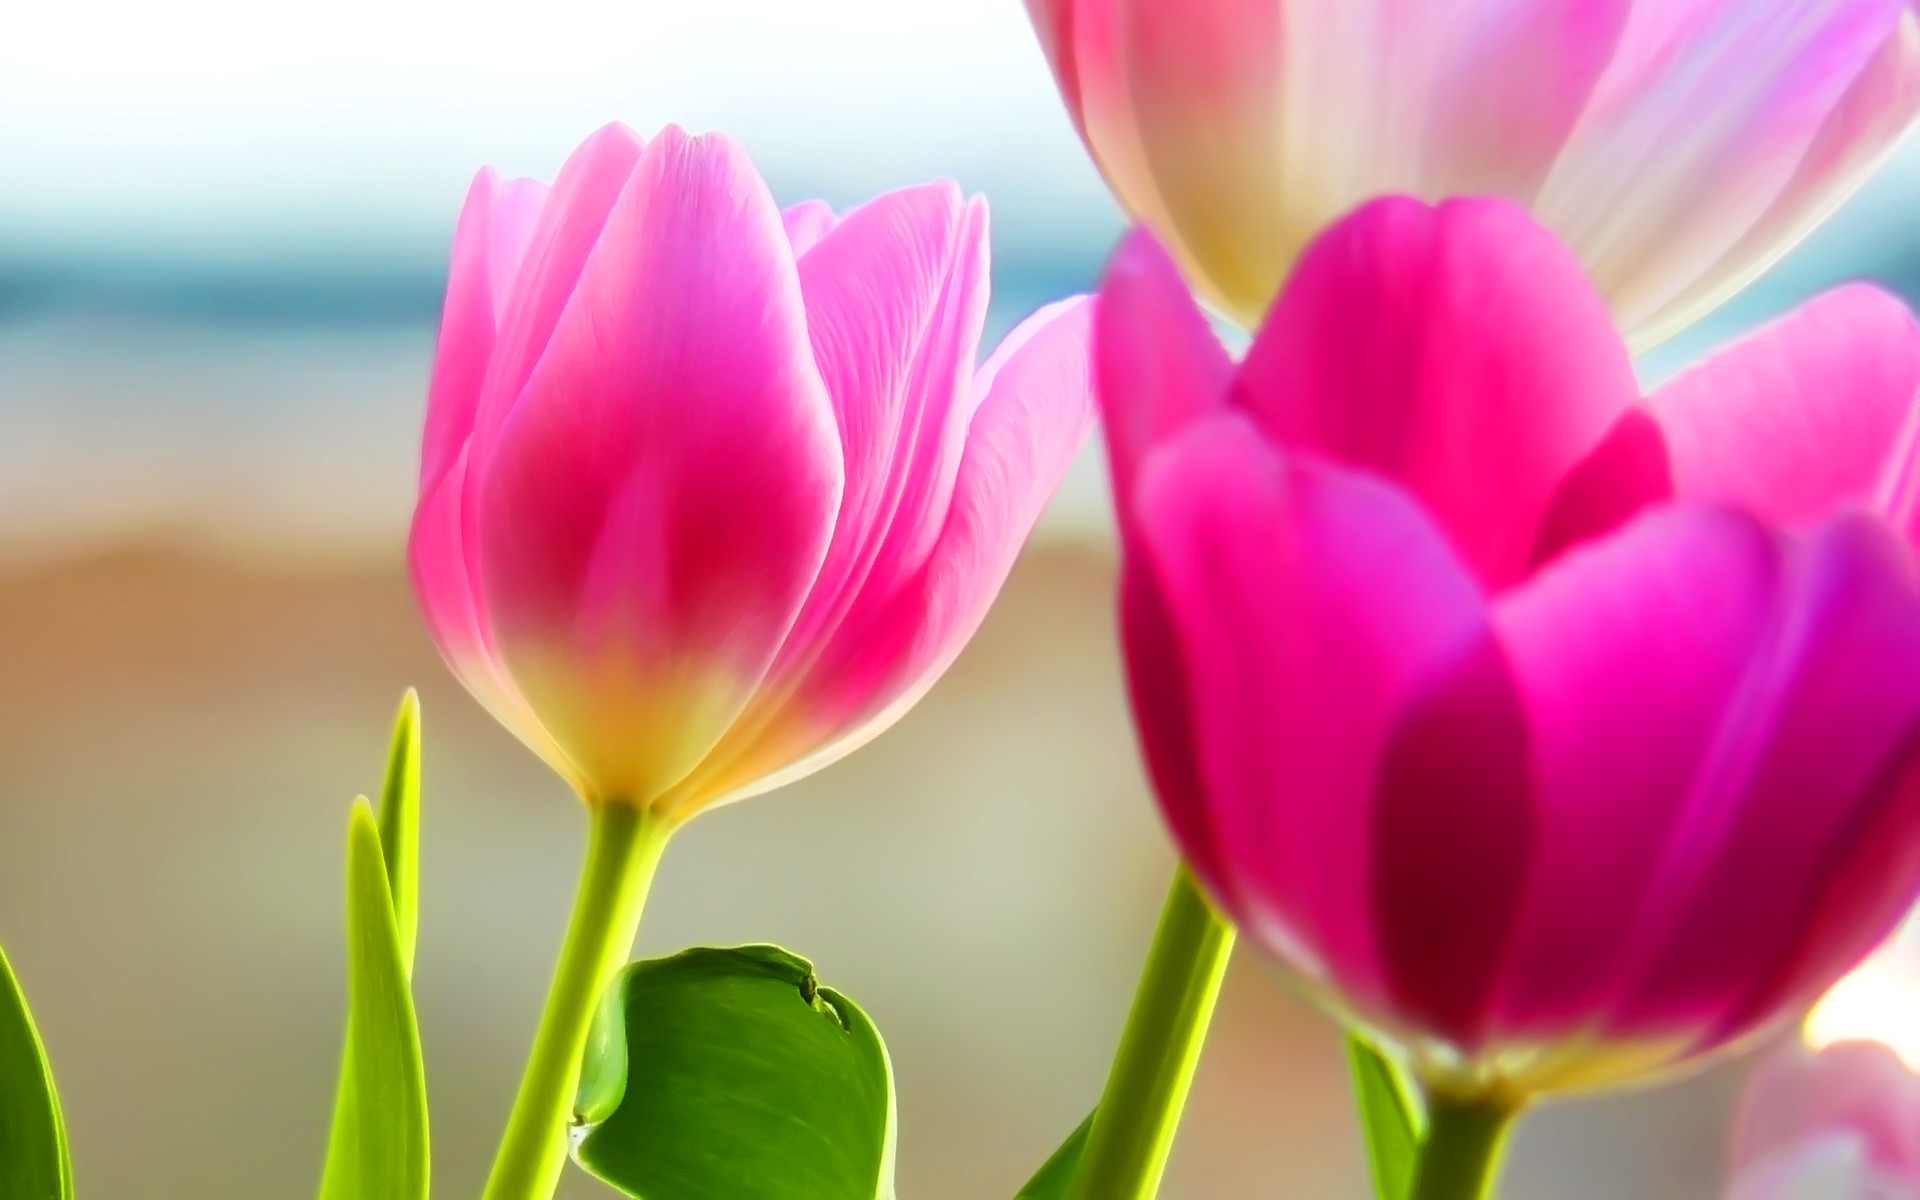 Tulips Background Spring Scenery Nature Desktop wallpapers HD free .